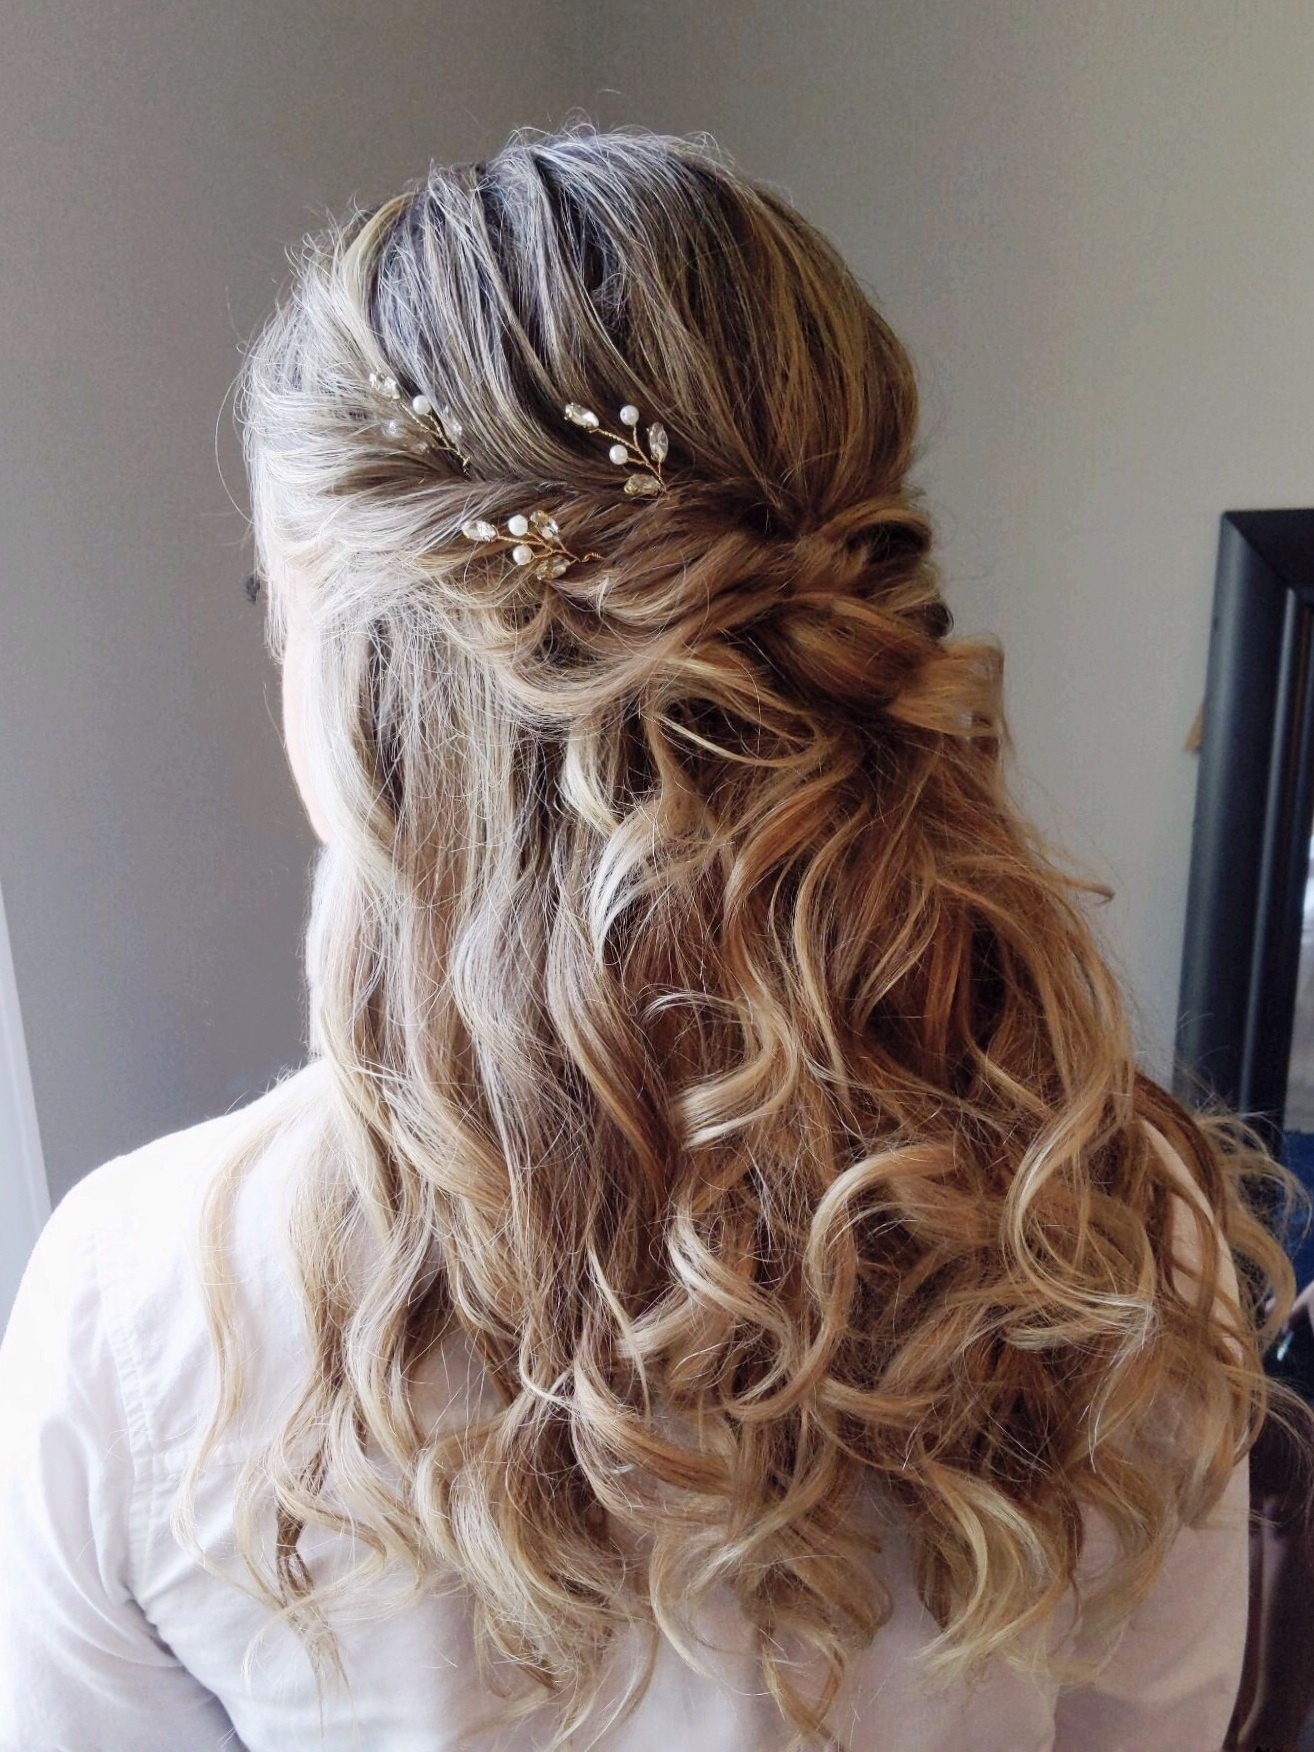 dallas-wedding-hair-makeup-artist